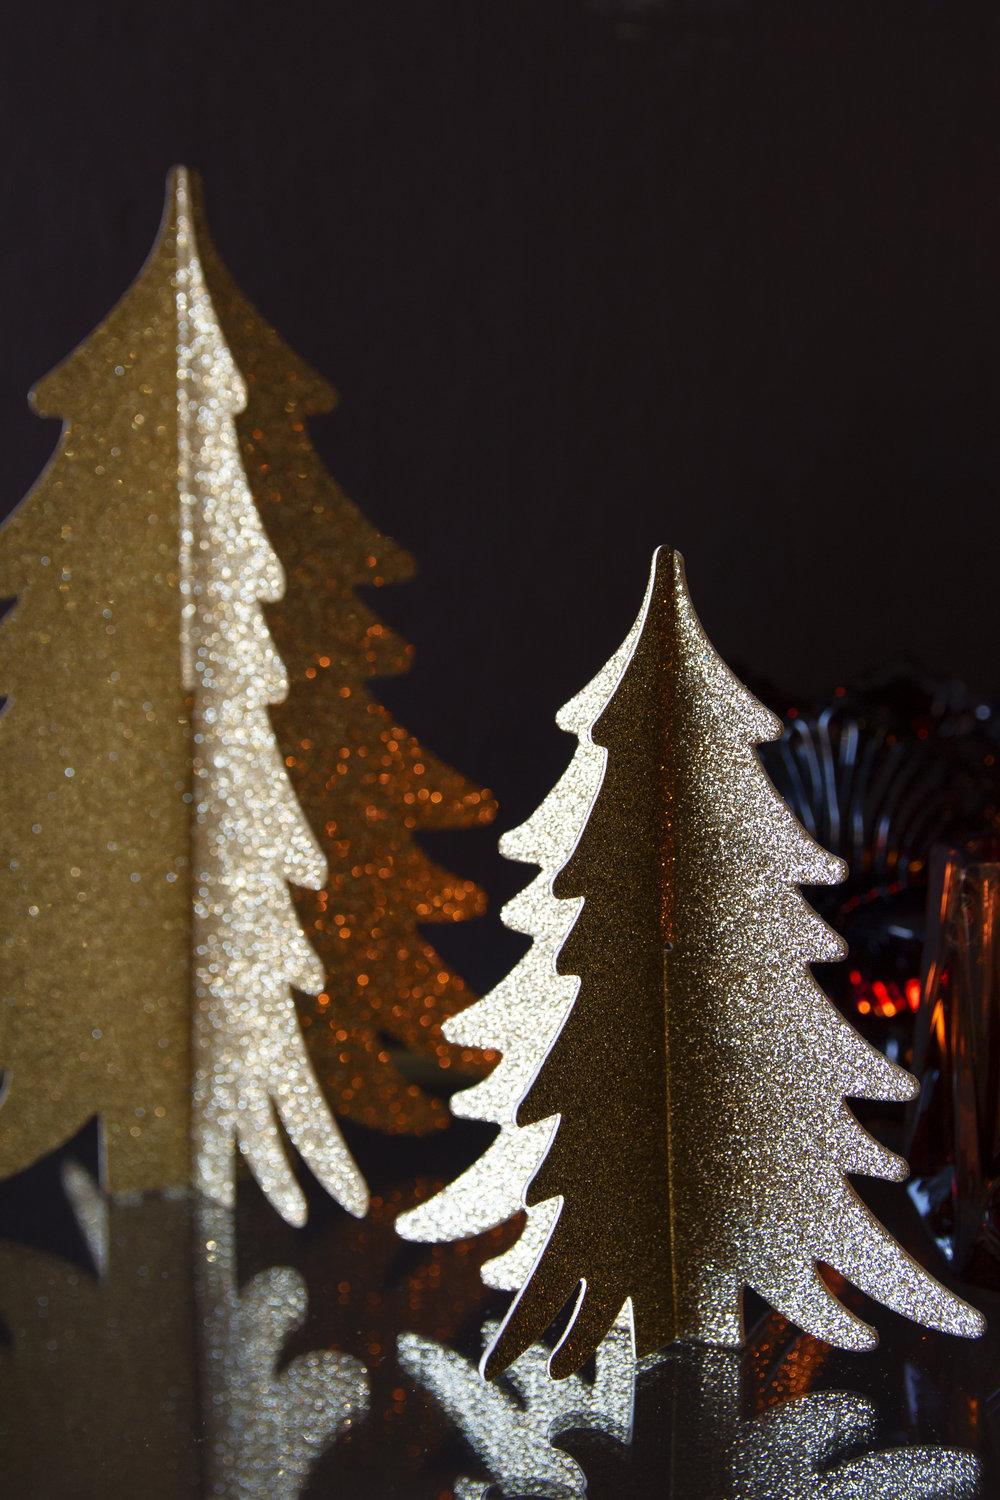 rockettstgeorge_gold_glitter_tree_decorations_lifestyle_highres.jpg